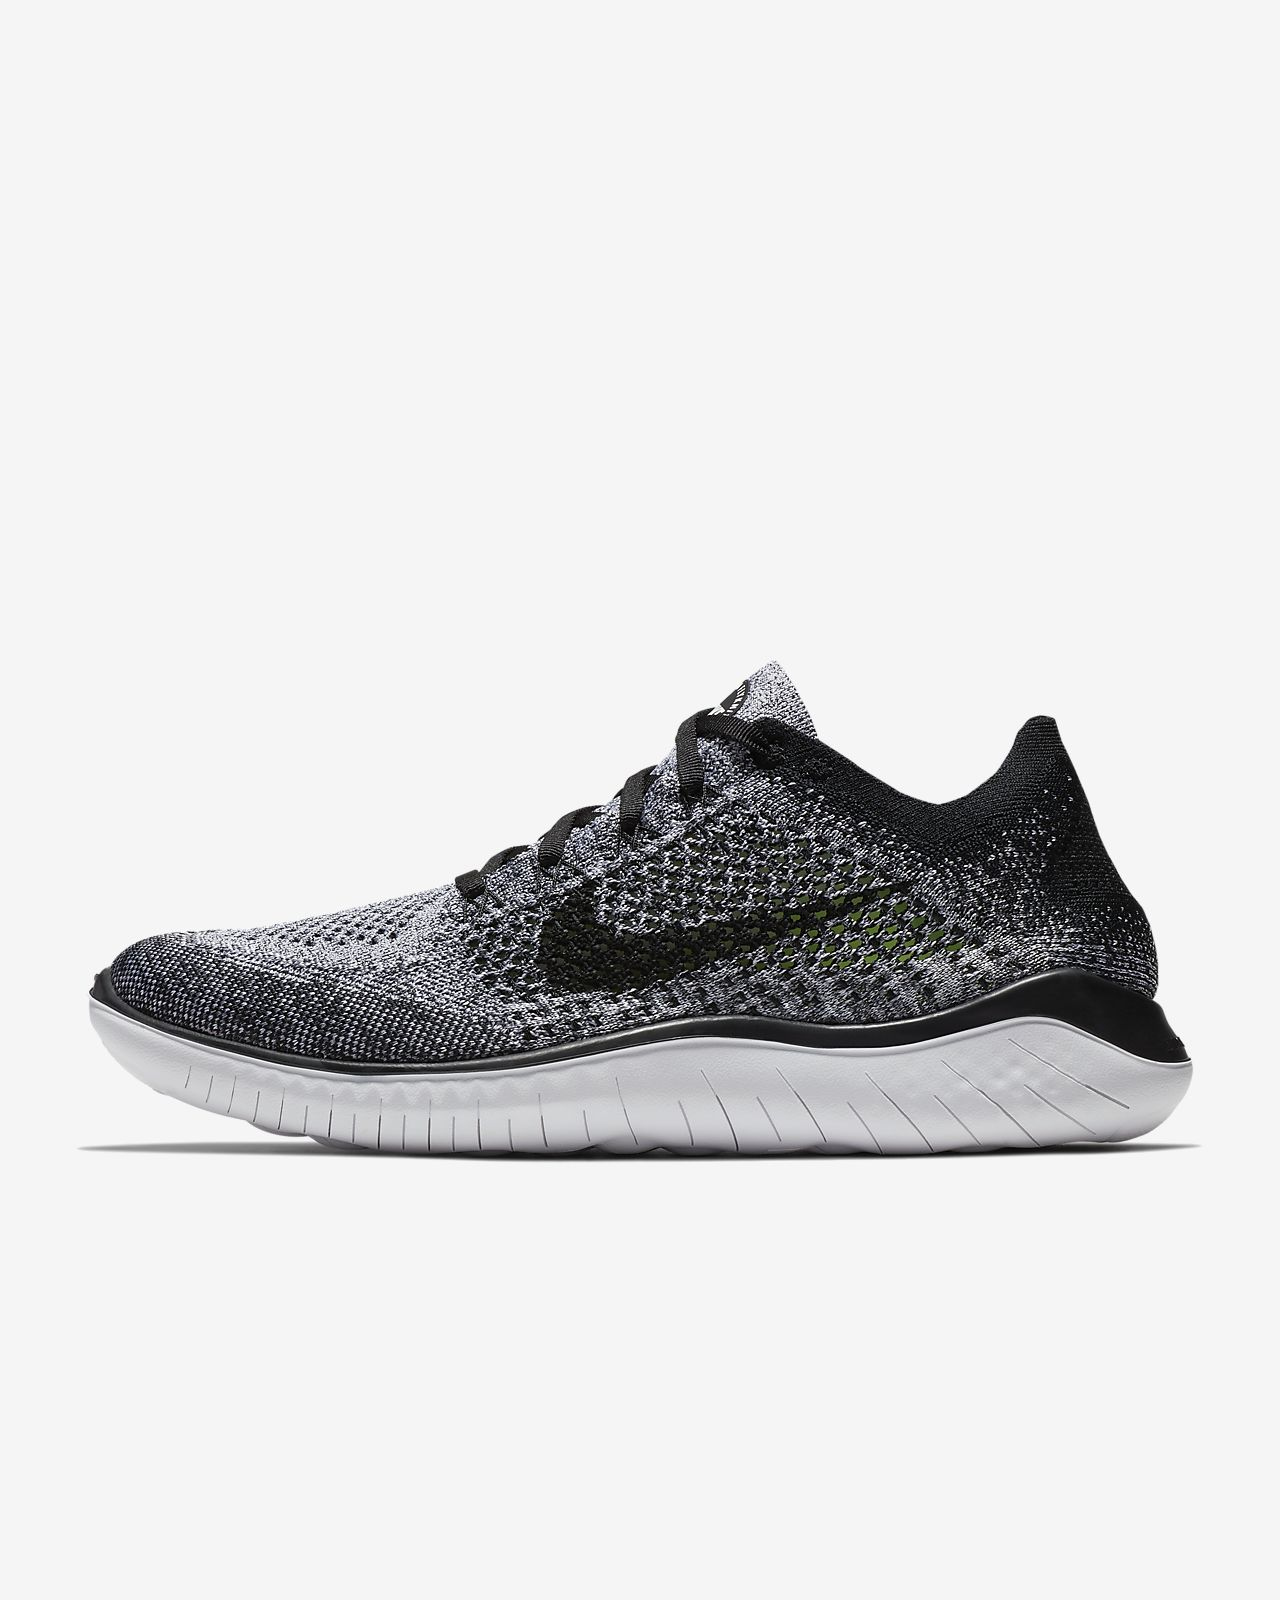 cheap for discount 3d81d 35680 Chaussure Pour Rn Running Free Be 2018 Homme De Flyknit 4qzcwbg Nike  O1wT8x8p